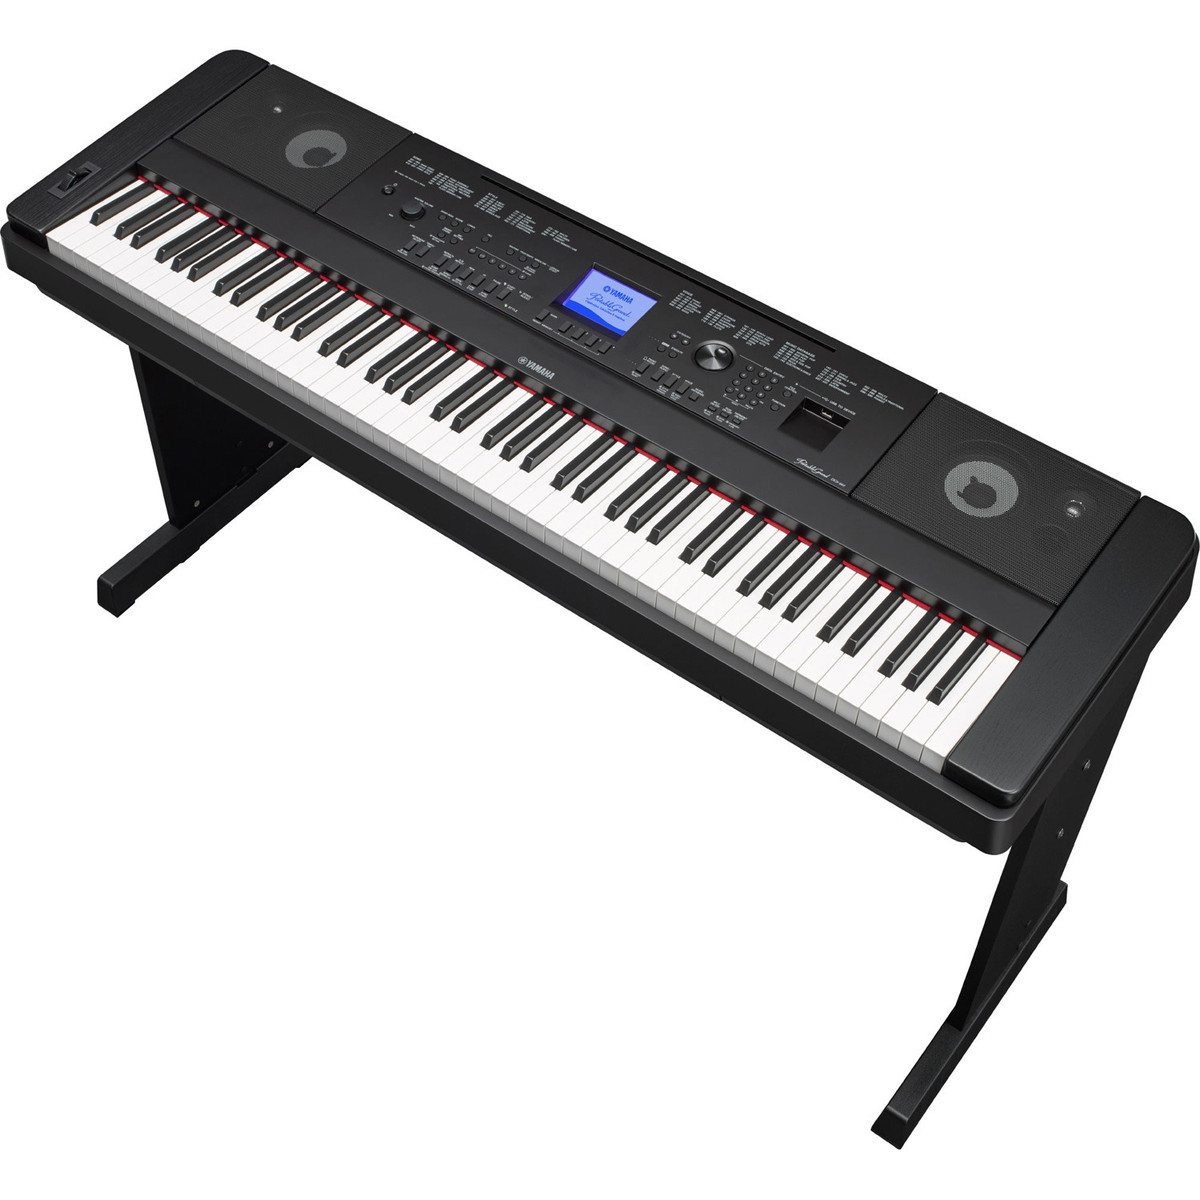 Yamaha dgx660 digital piano with stand black at for Yamaha piano com